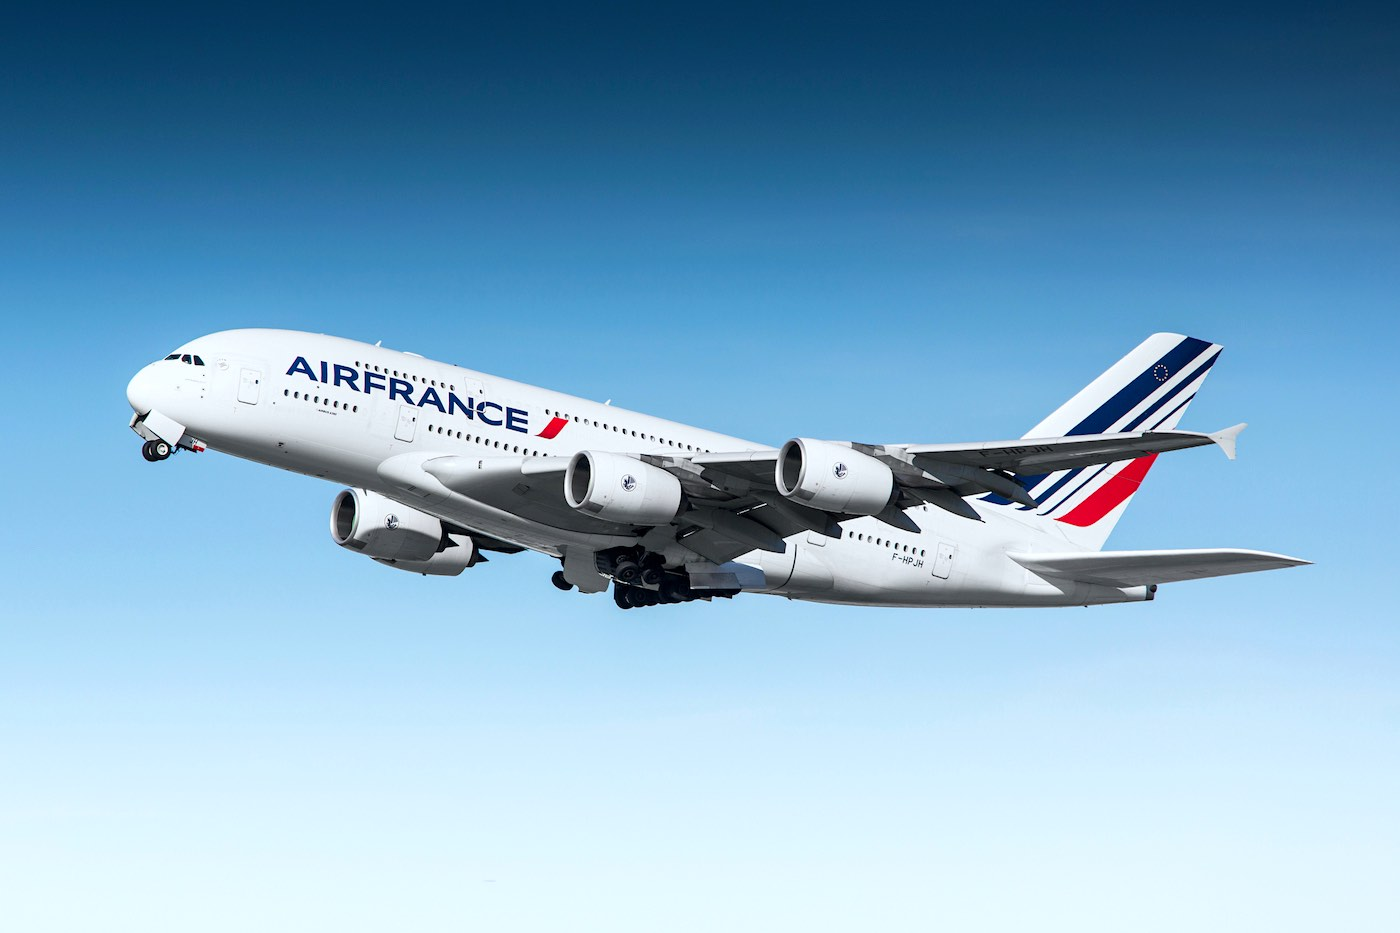 Reserve su viaje en Air France con total confianza